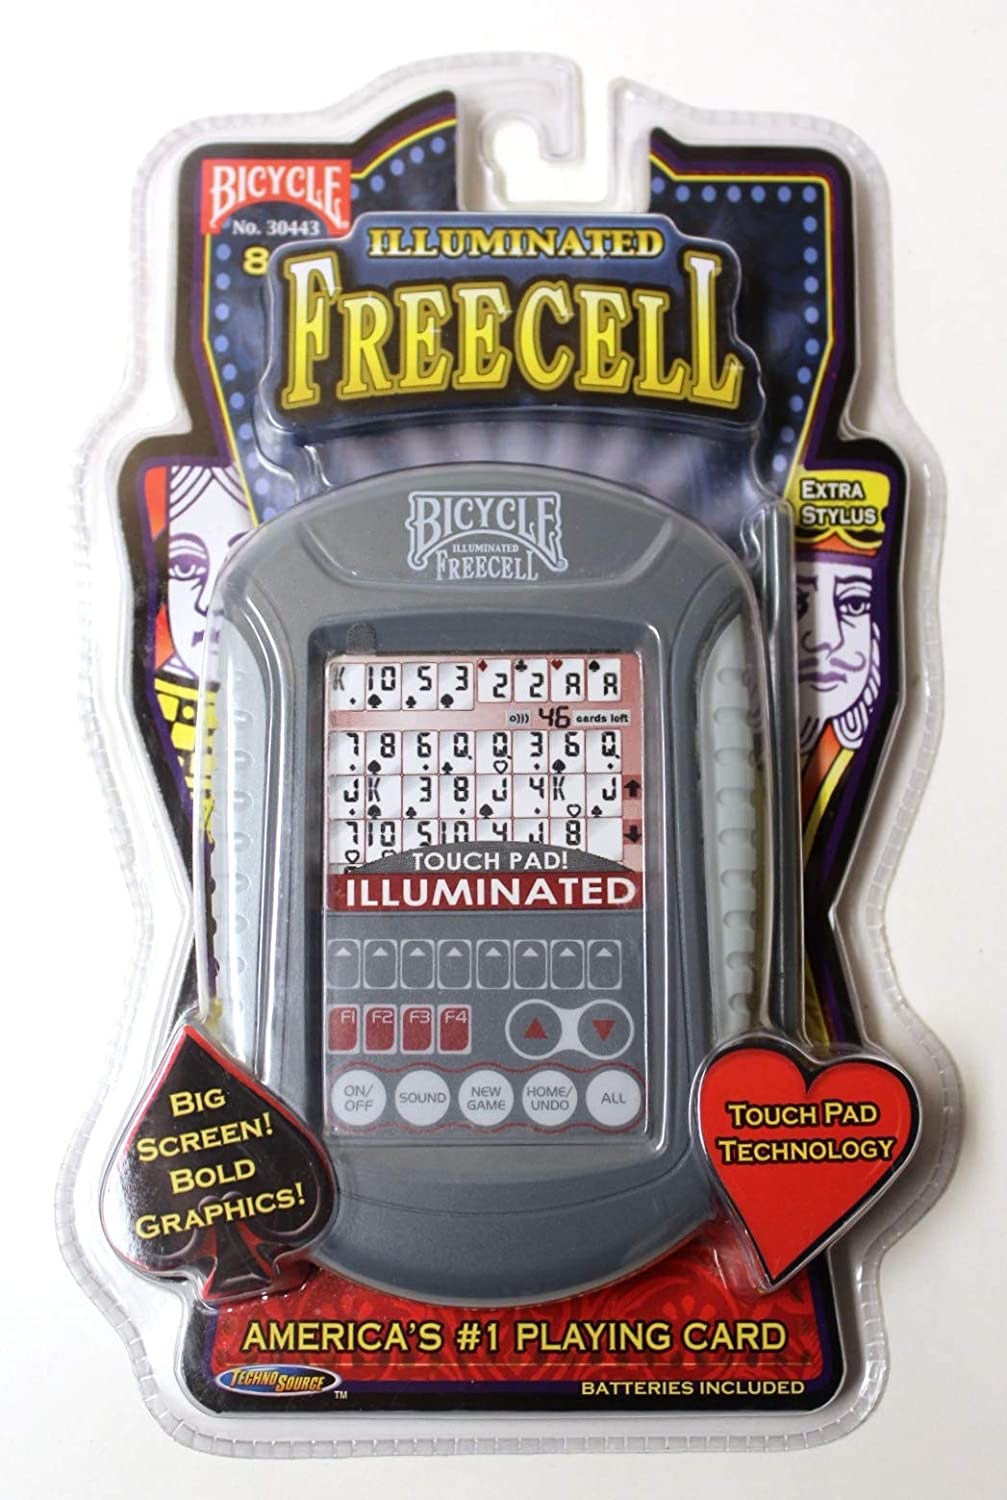 US Playing Card Company Bicycle Illuminated Touch Pad FreeCell